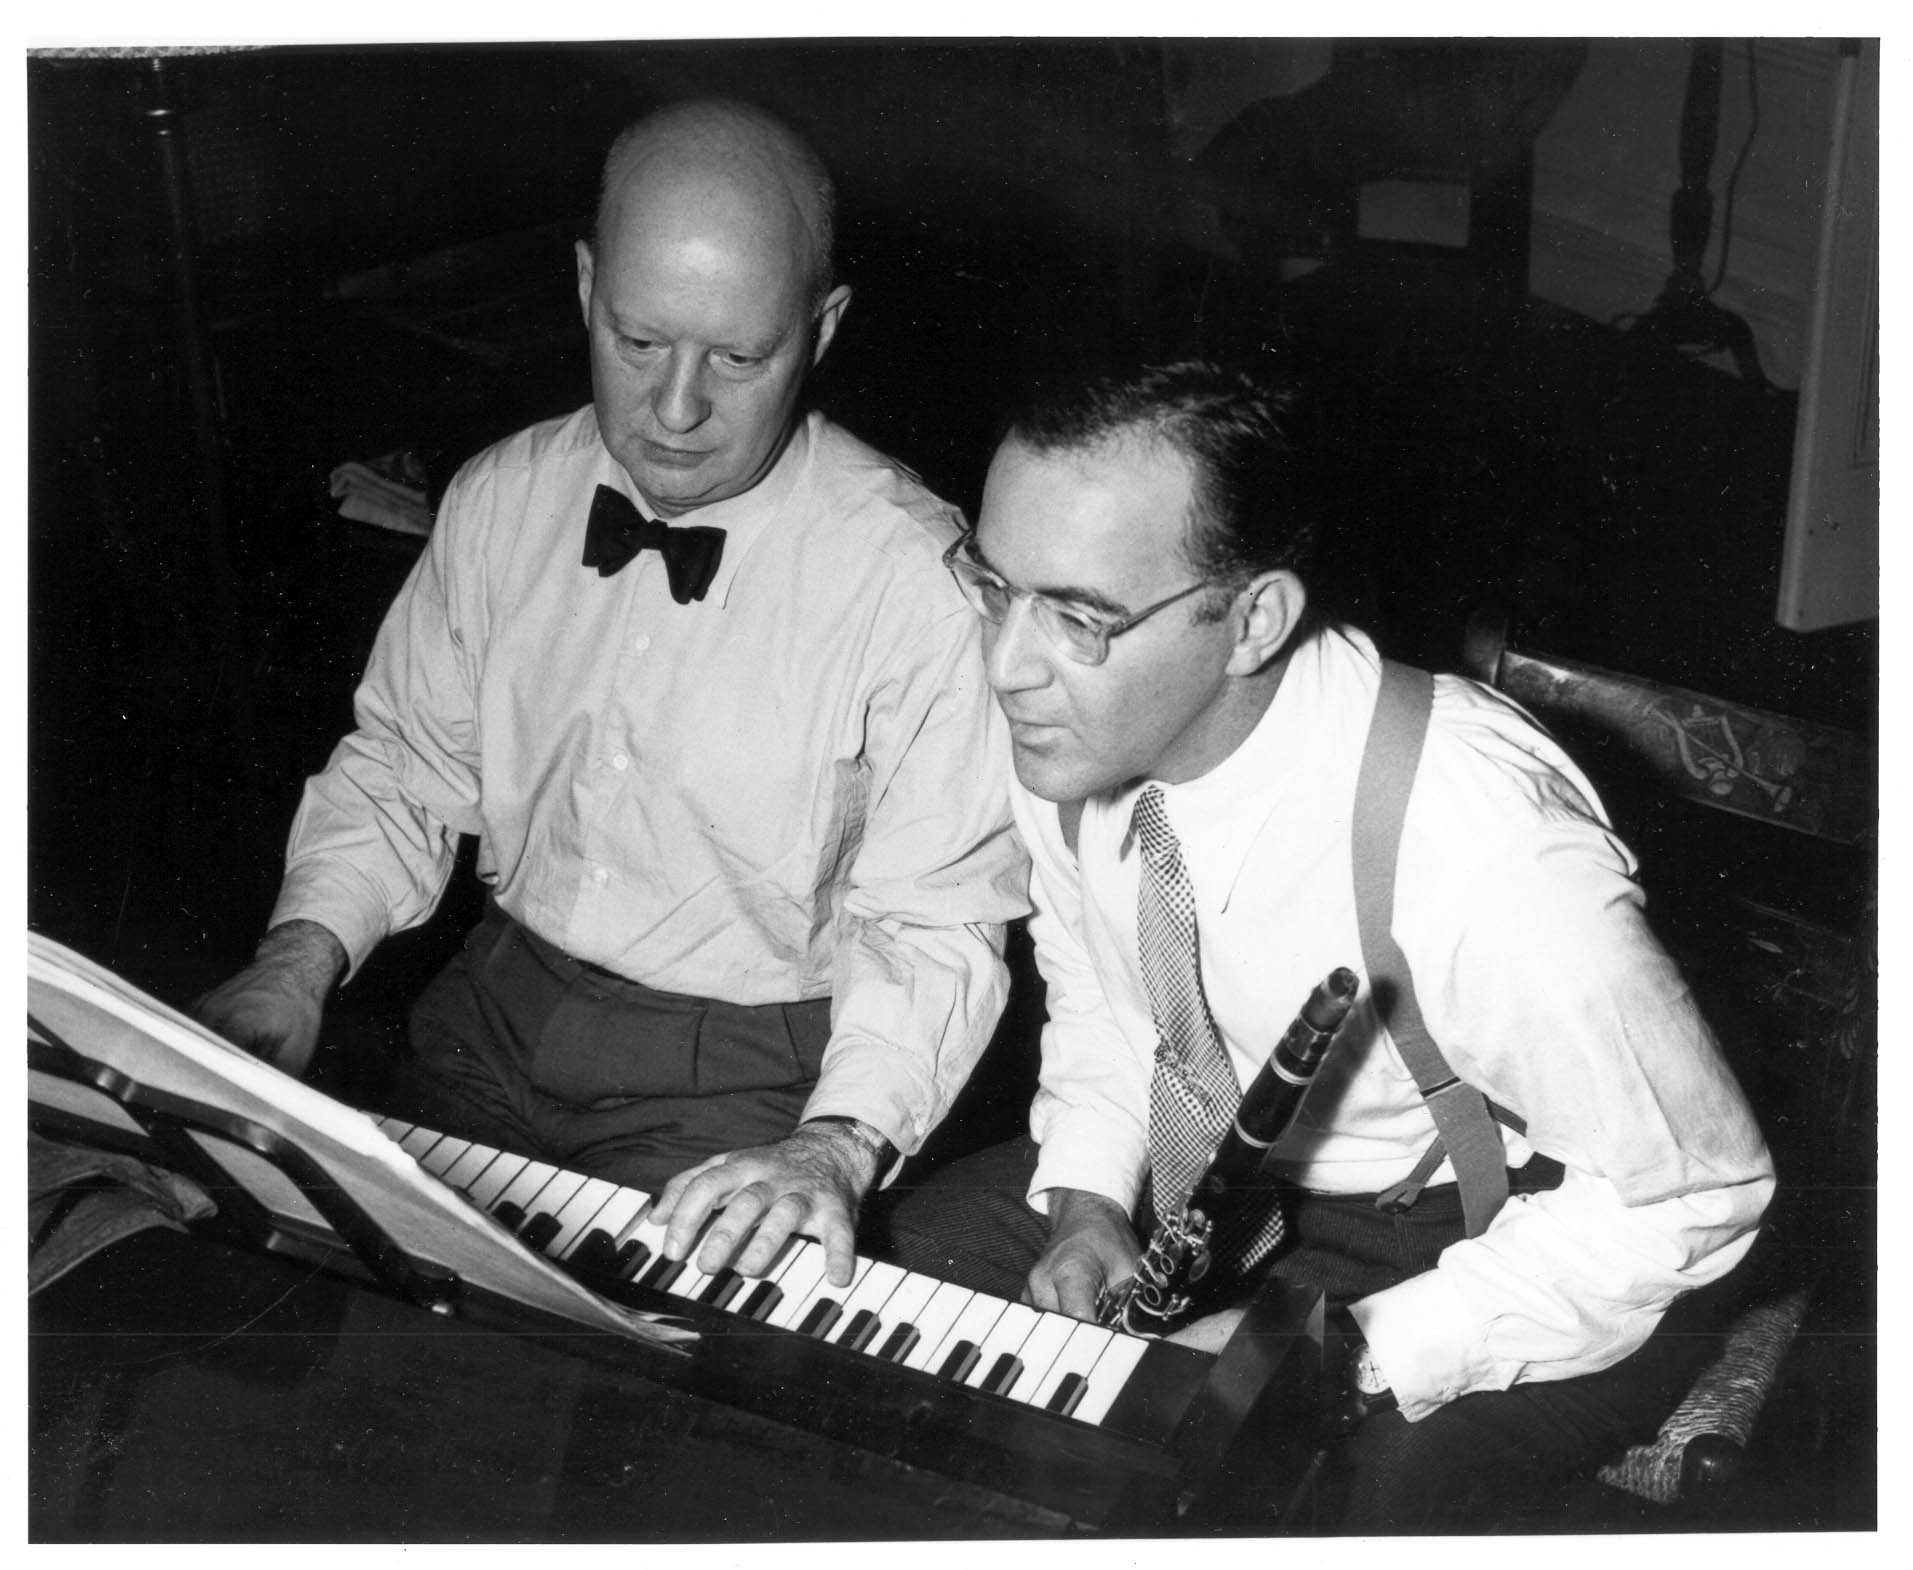 hindemith and benny